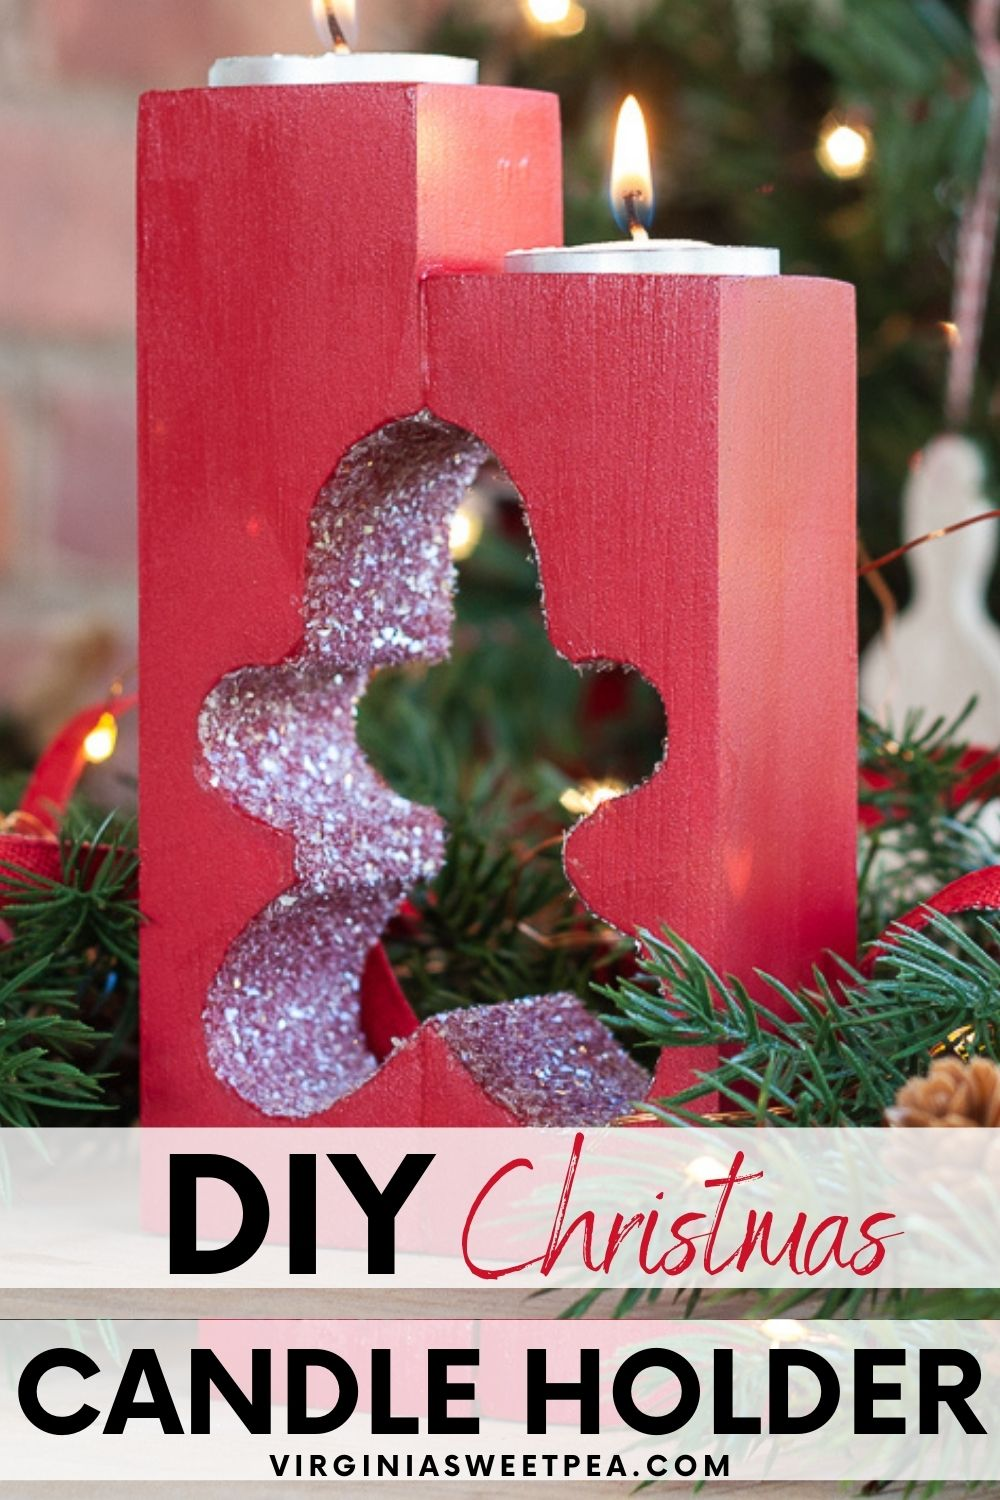 Gingerbread Man DIY Christmas Wooden Candle Holder - Learn how to make a glittered gingerbread candle holder for Christmas decor.  This candle holder also makes a great Christmas gift!  #diycandleholder #diychristmasgift  via @spaula